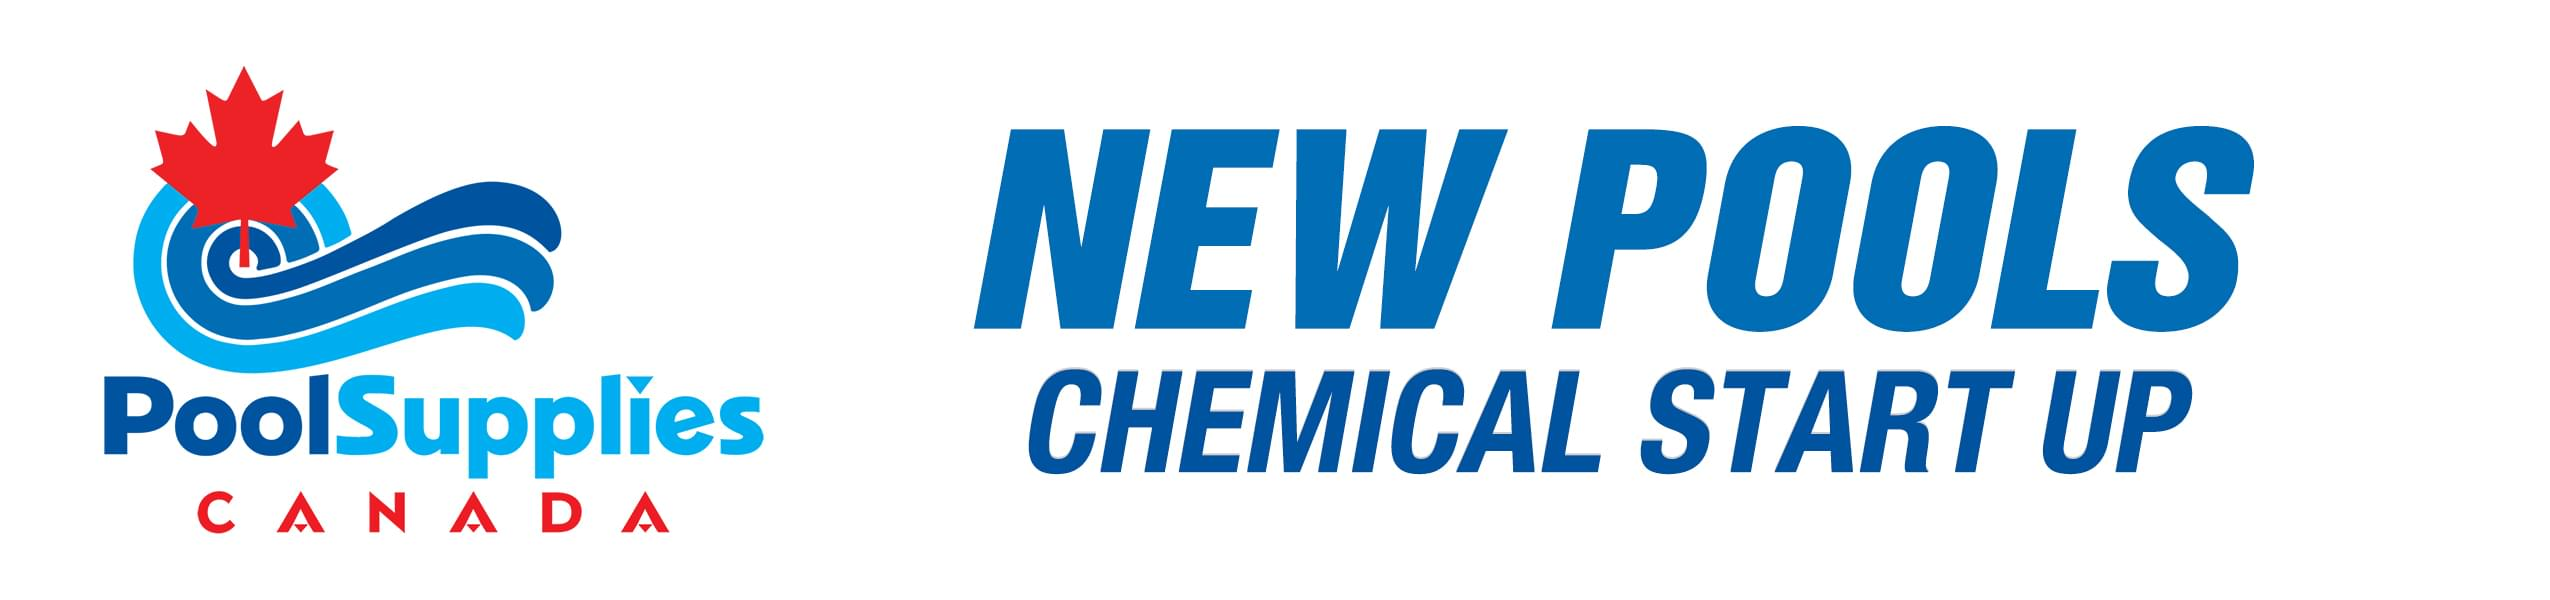 Chemical Start Up For New Pools